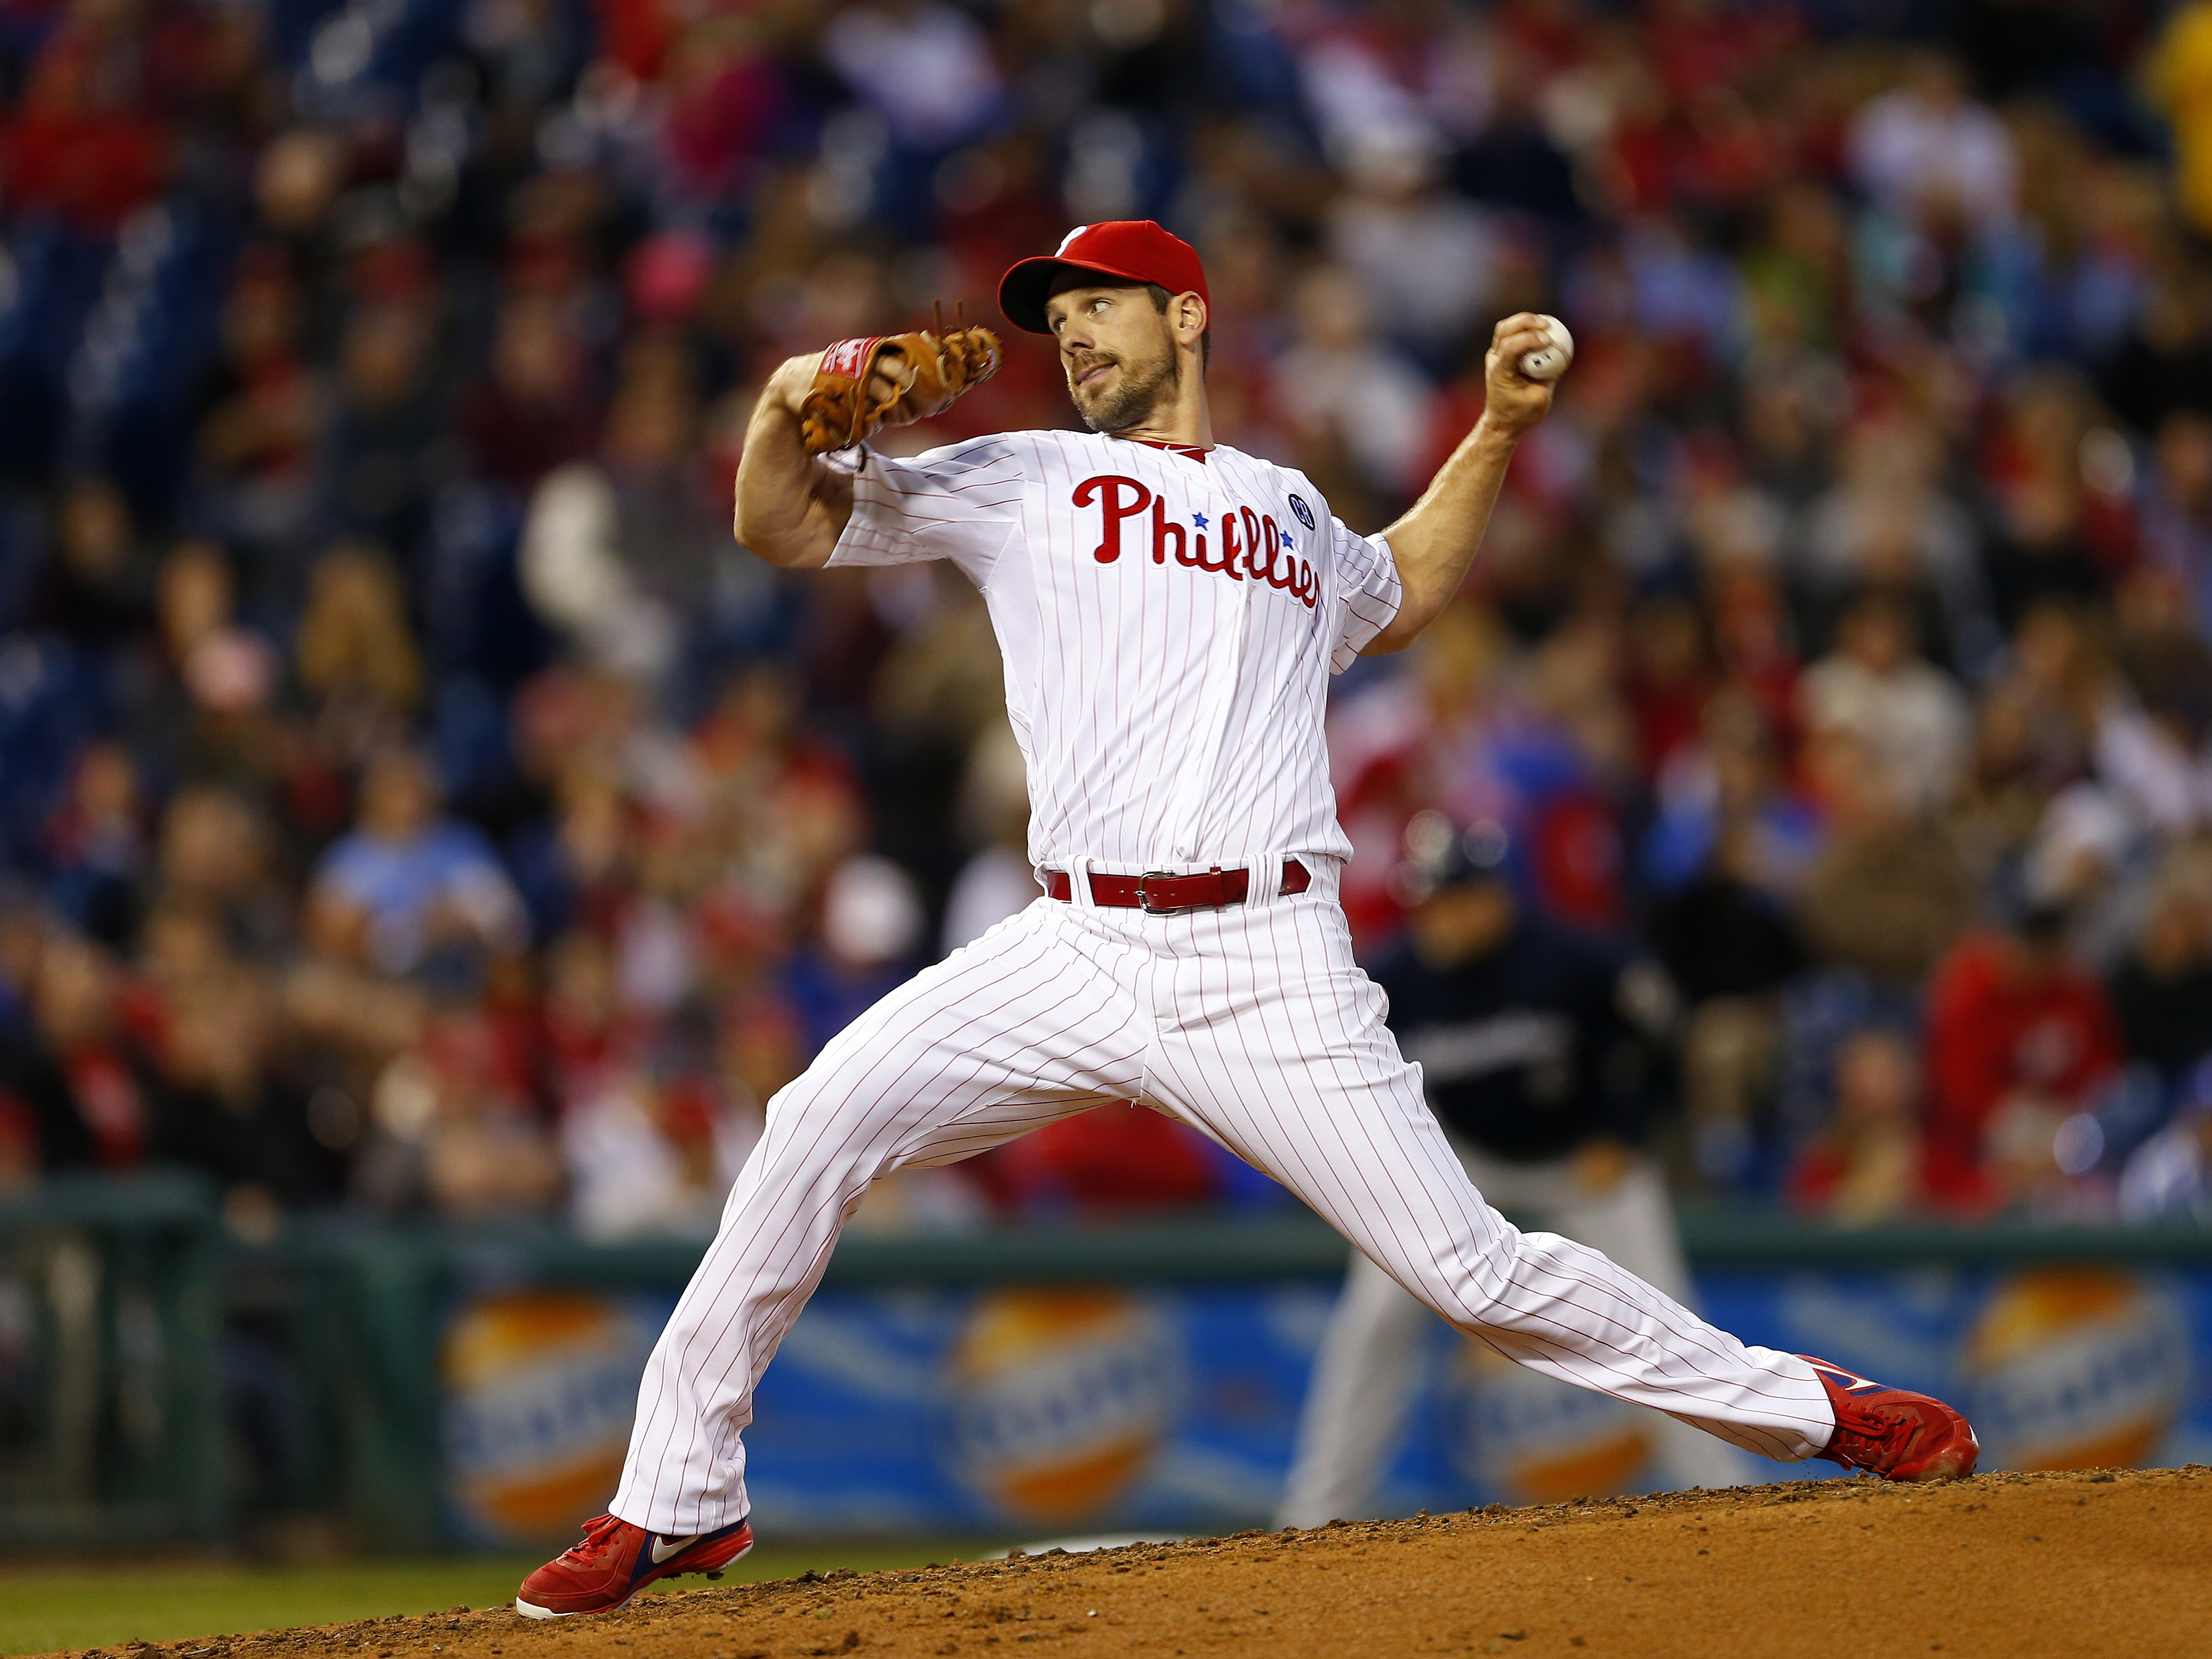 Cliff Lee of the Philadelphia Phillies.